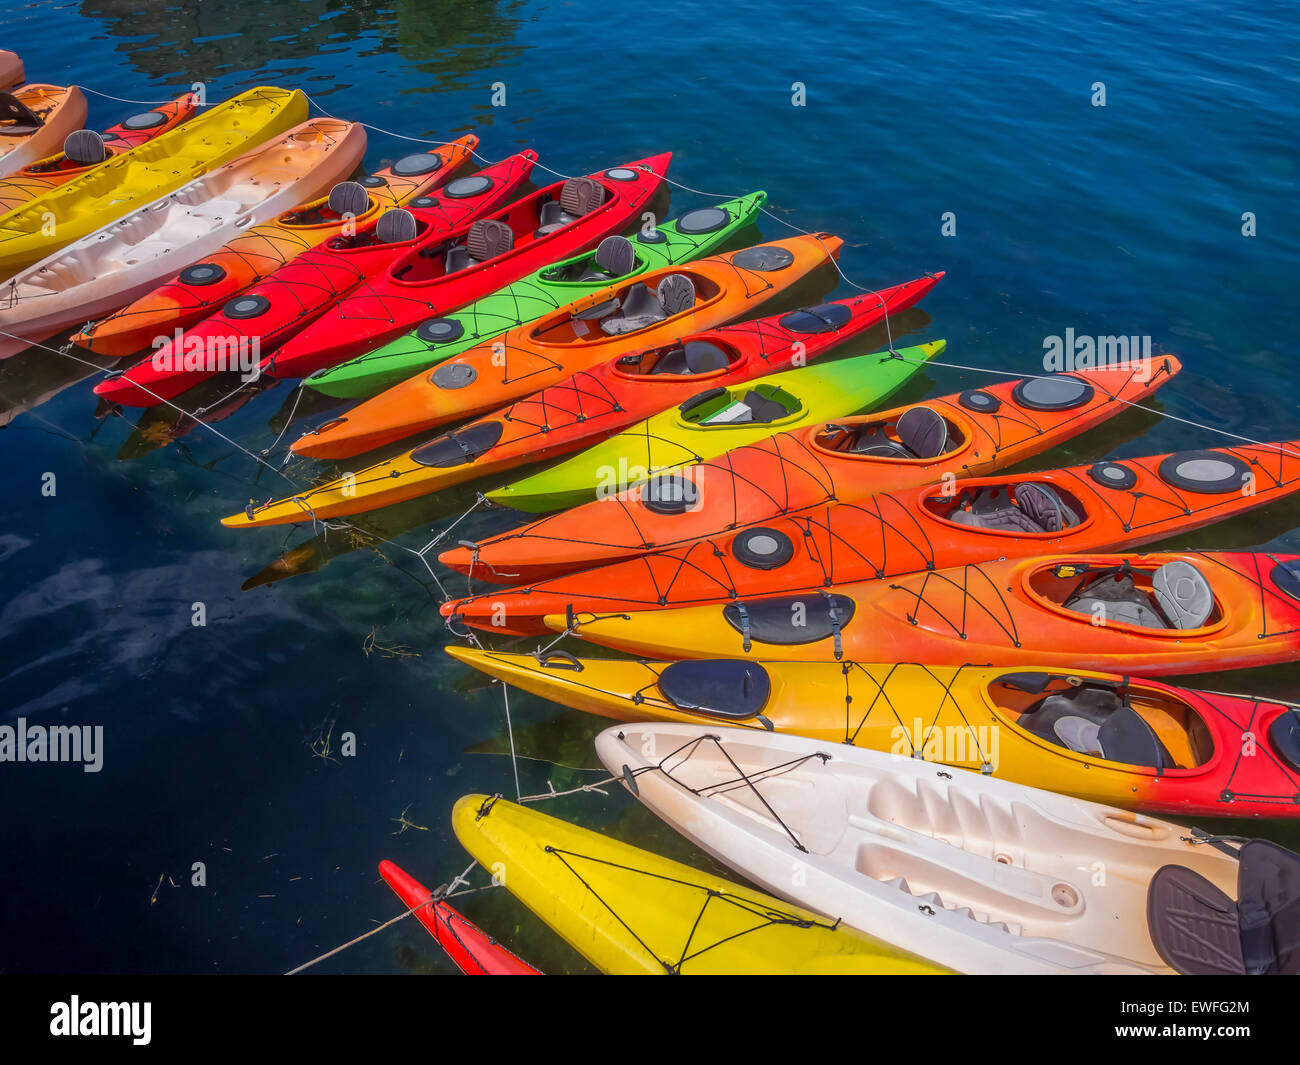 Kayaks formant un arc gracieux dans les eaux de Rockport, MA. USA Photo Stock